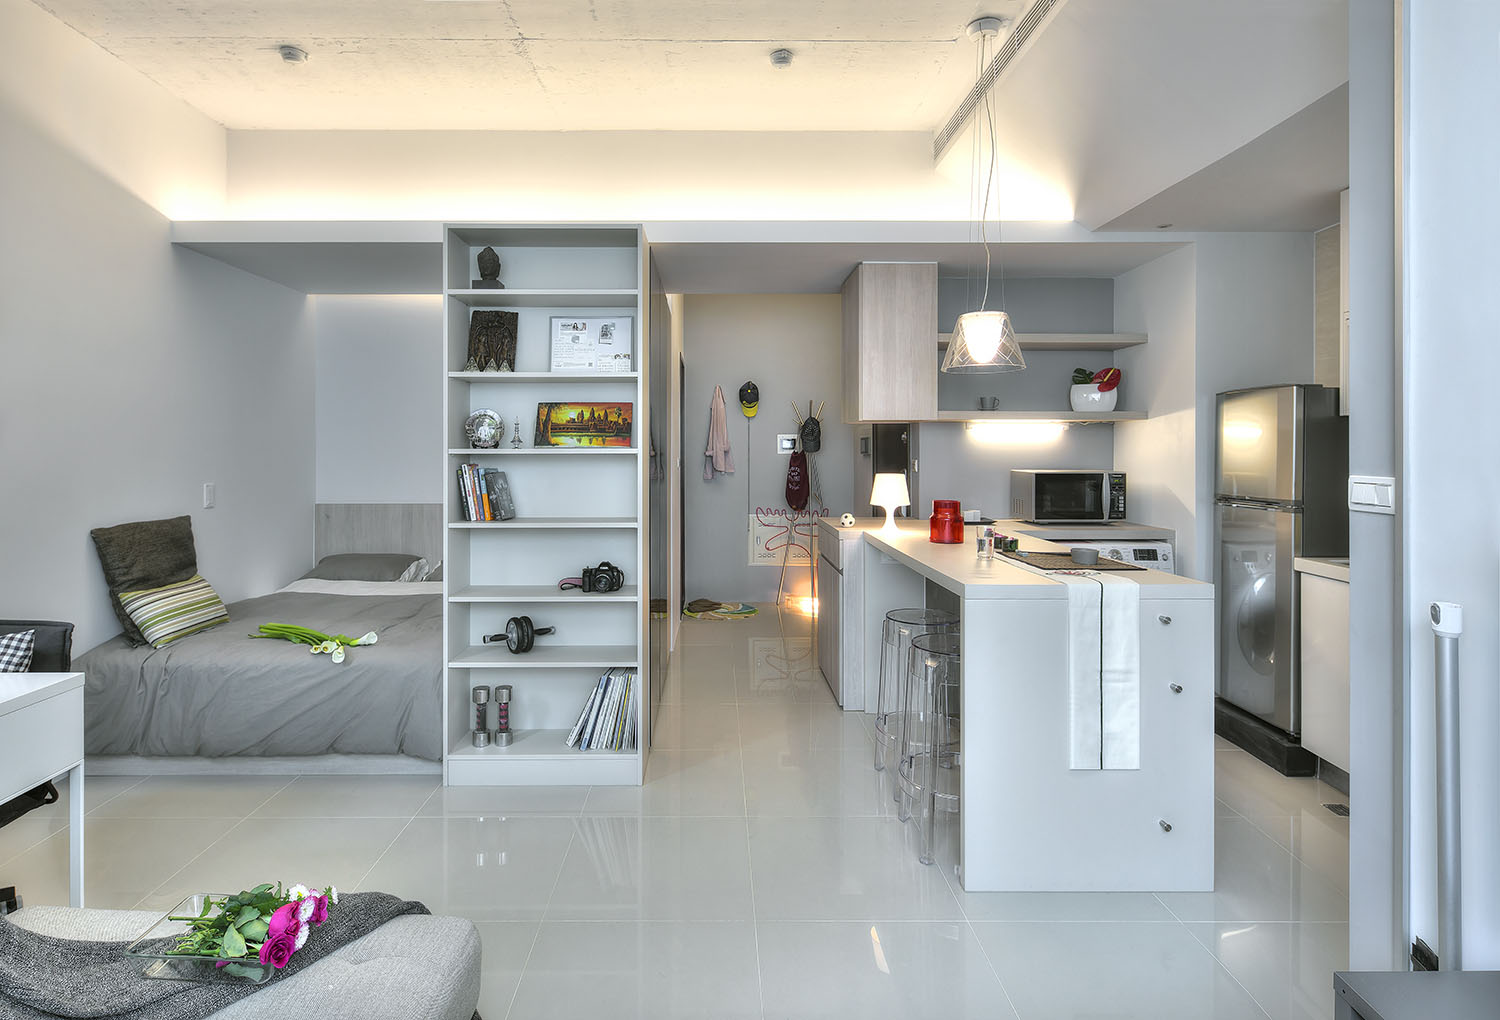 small taipei studio apartment with clever efficient design small taipei studio apartment with clever efficient design